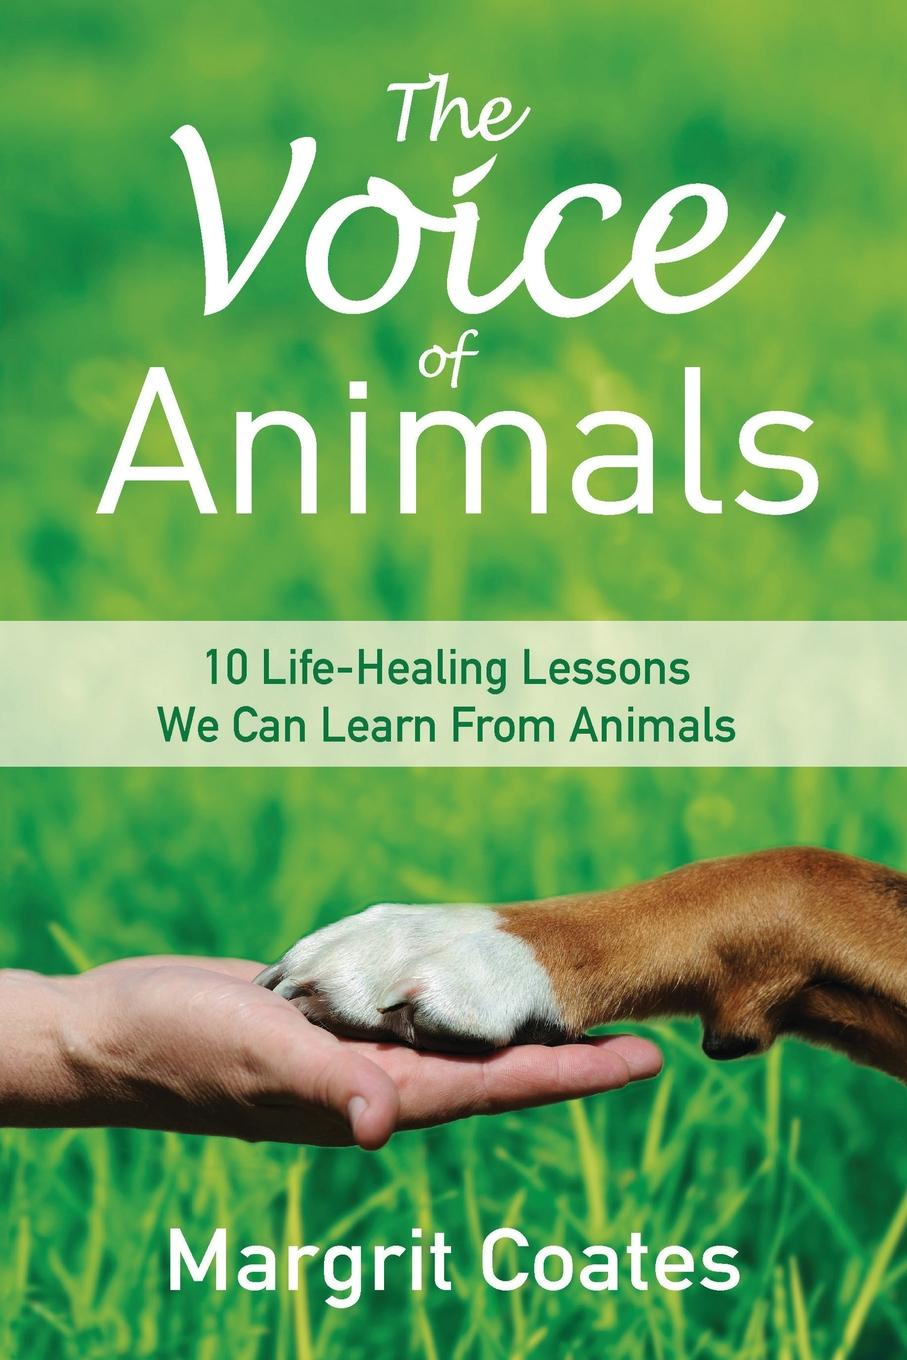 лучшая цена Margrit Coates The Voice of Animals. 10 Life-Healing Lessons we can Learn from Animals